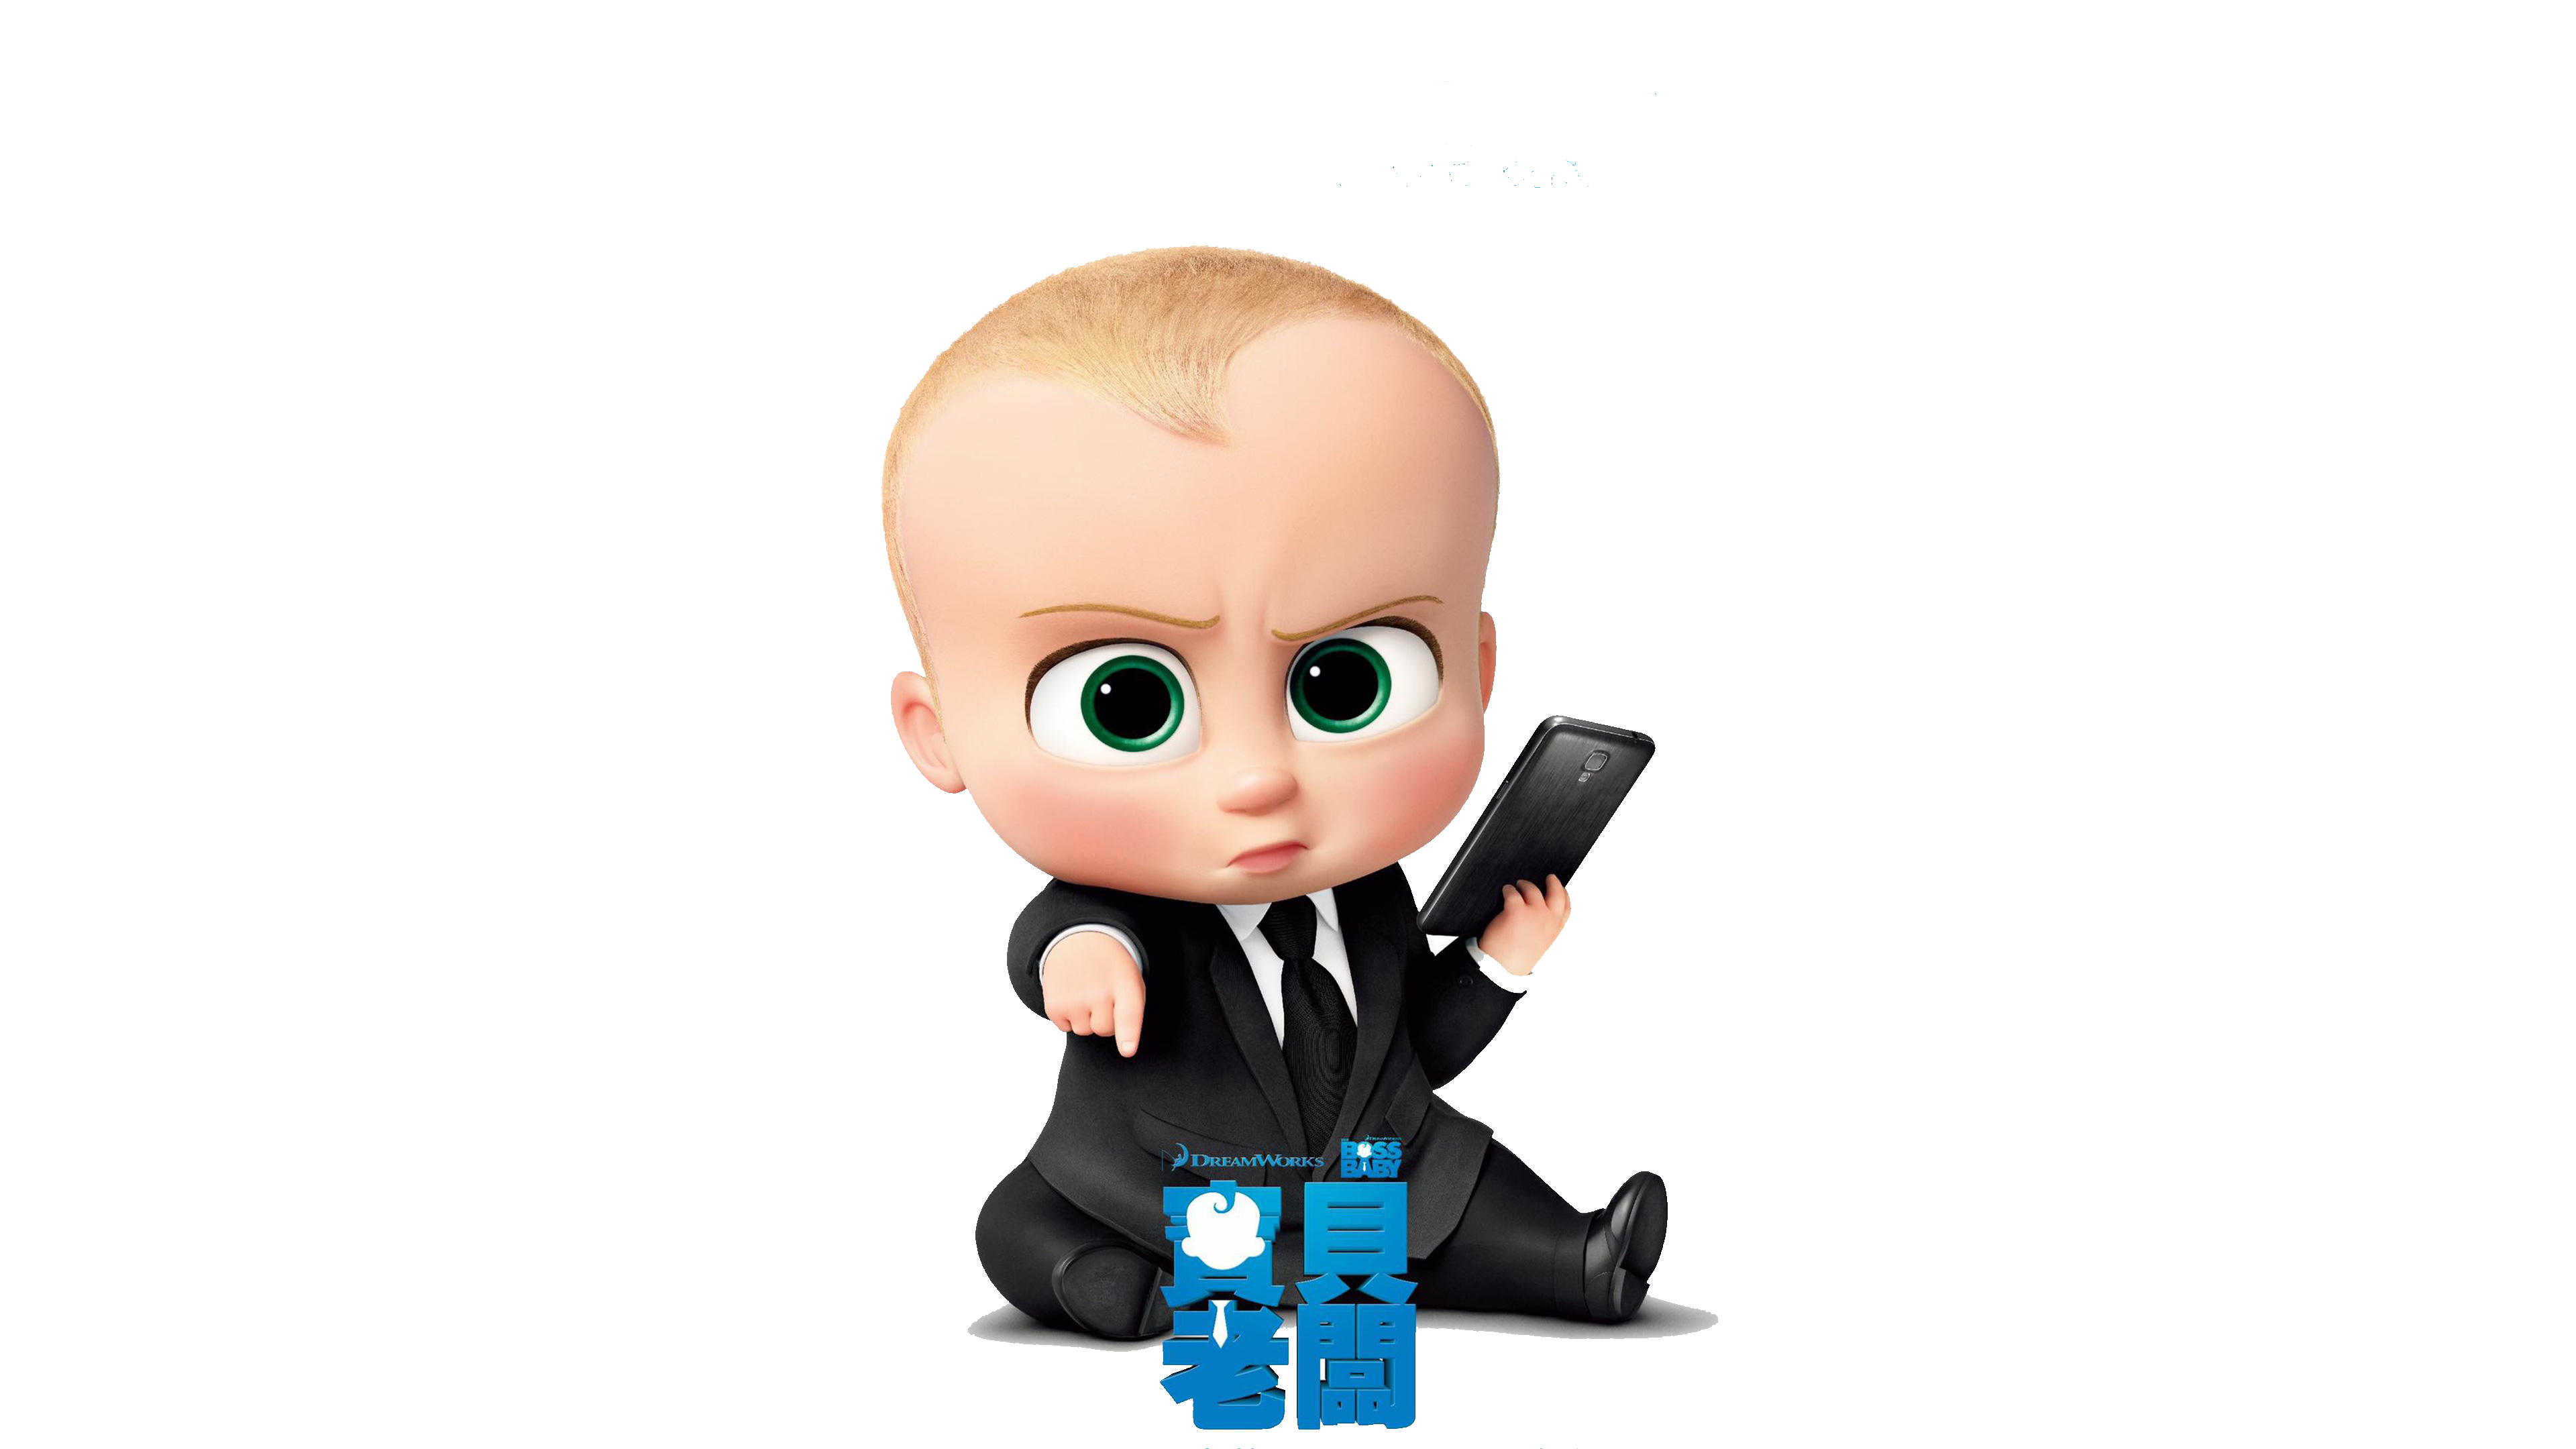 The boss baby dreamworks 4k hd movies 4k wallpapers - Baby animation wallpaper ...